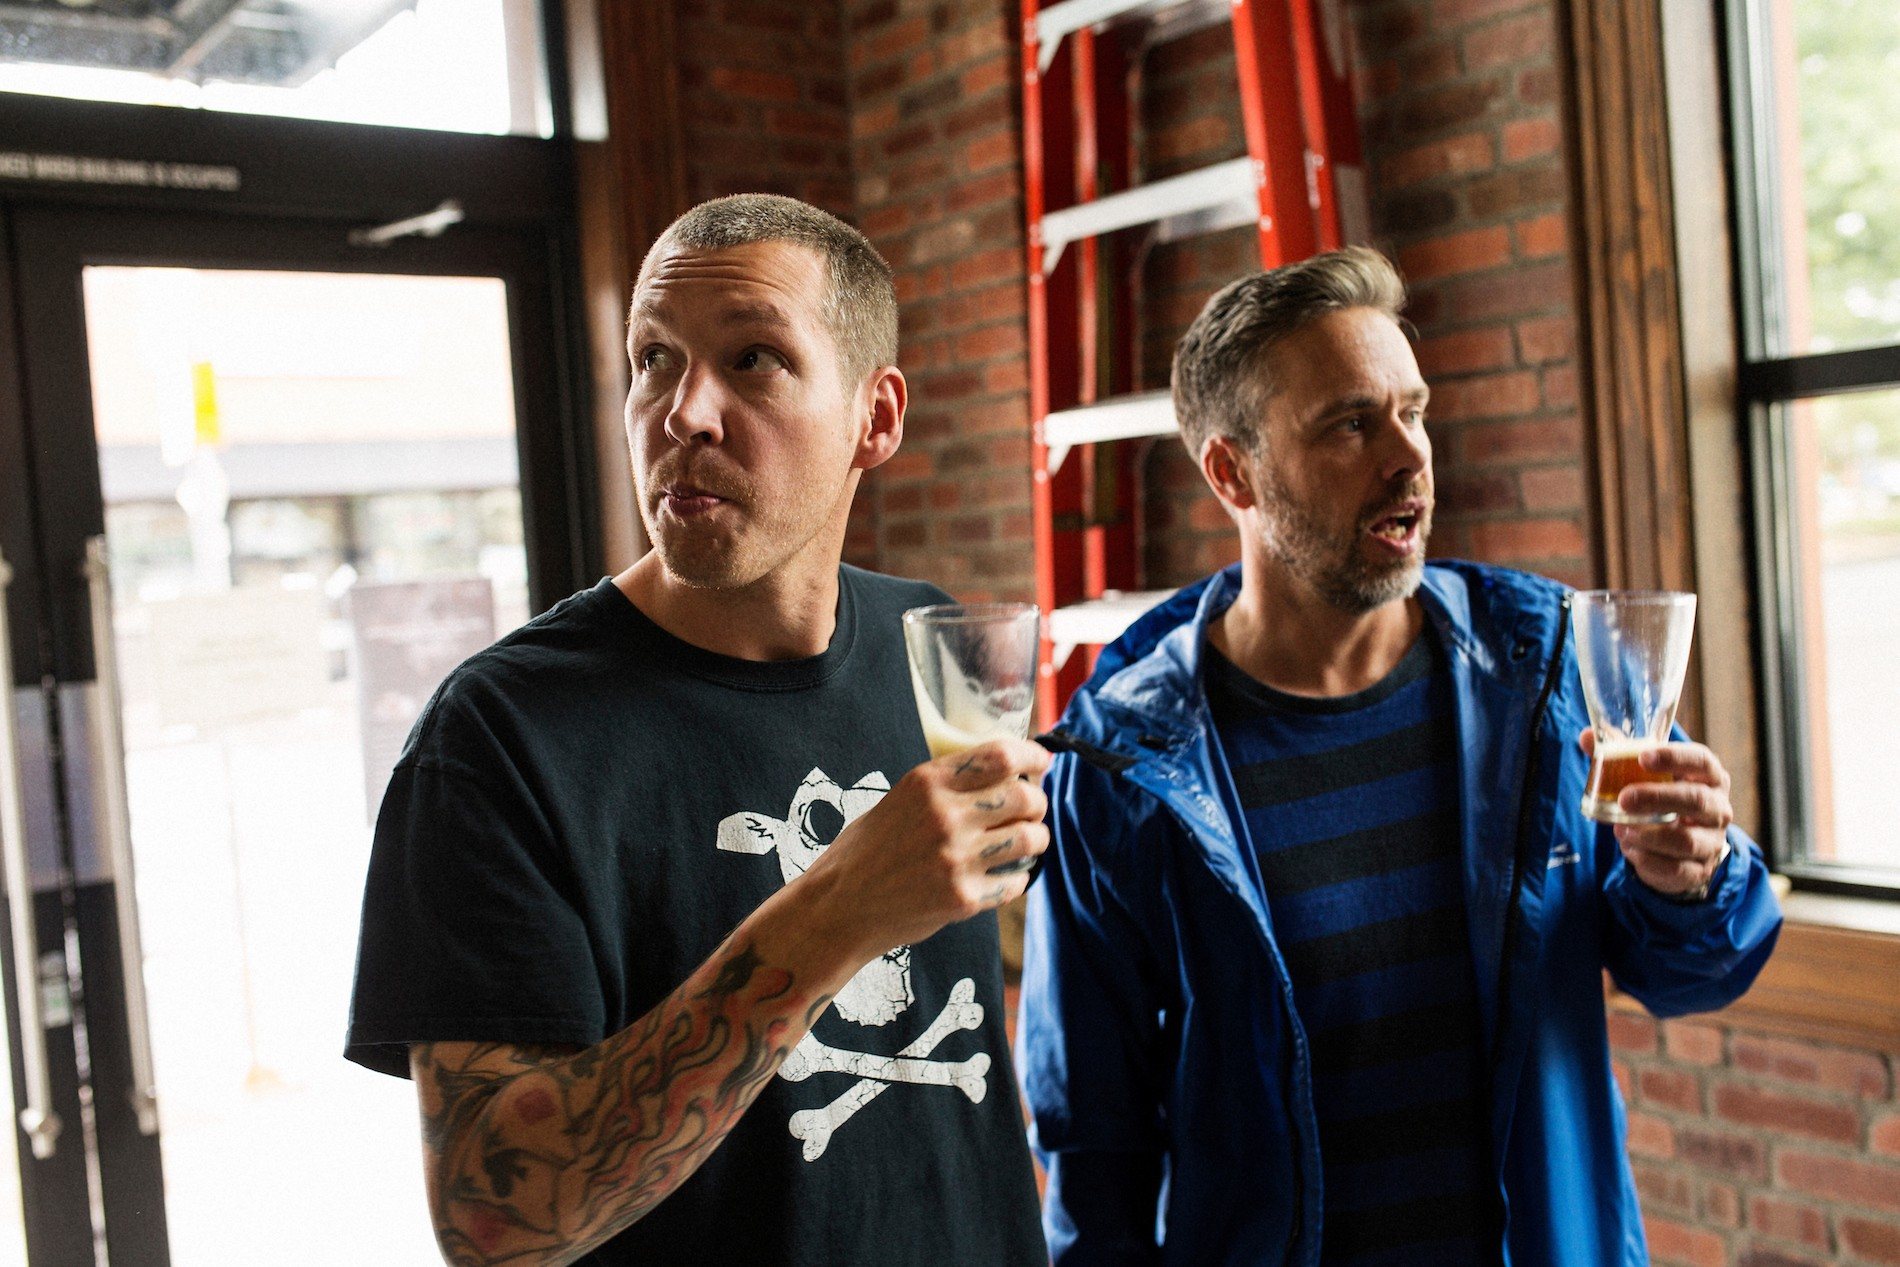 Chefs Lee Cooper and Justin Leboe try